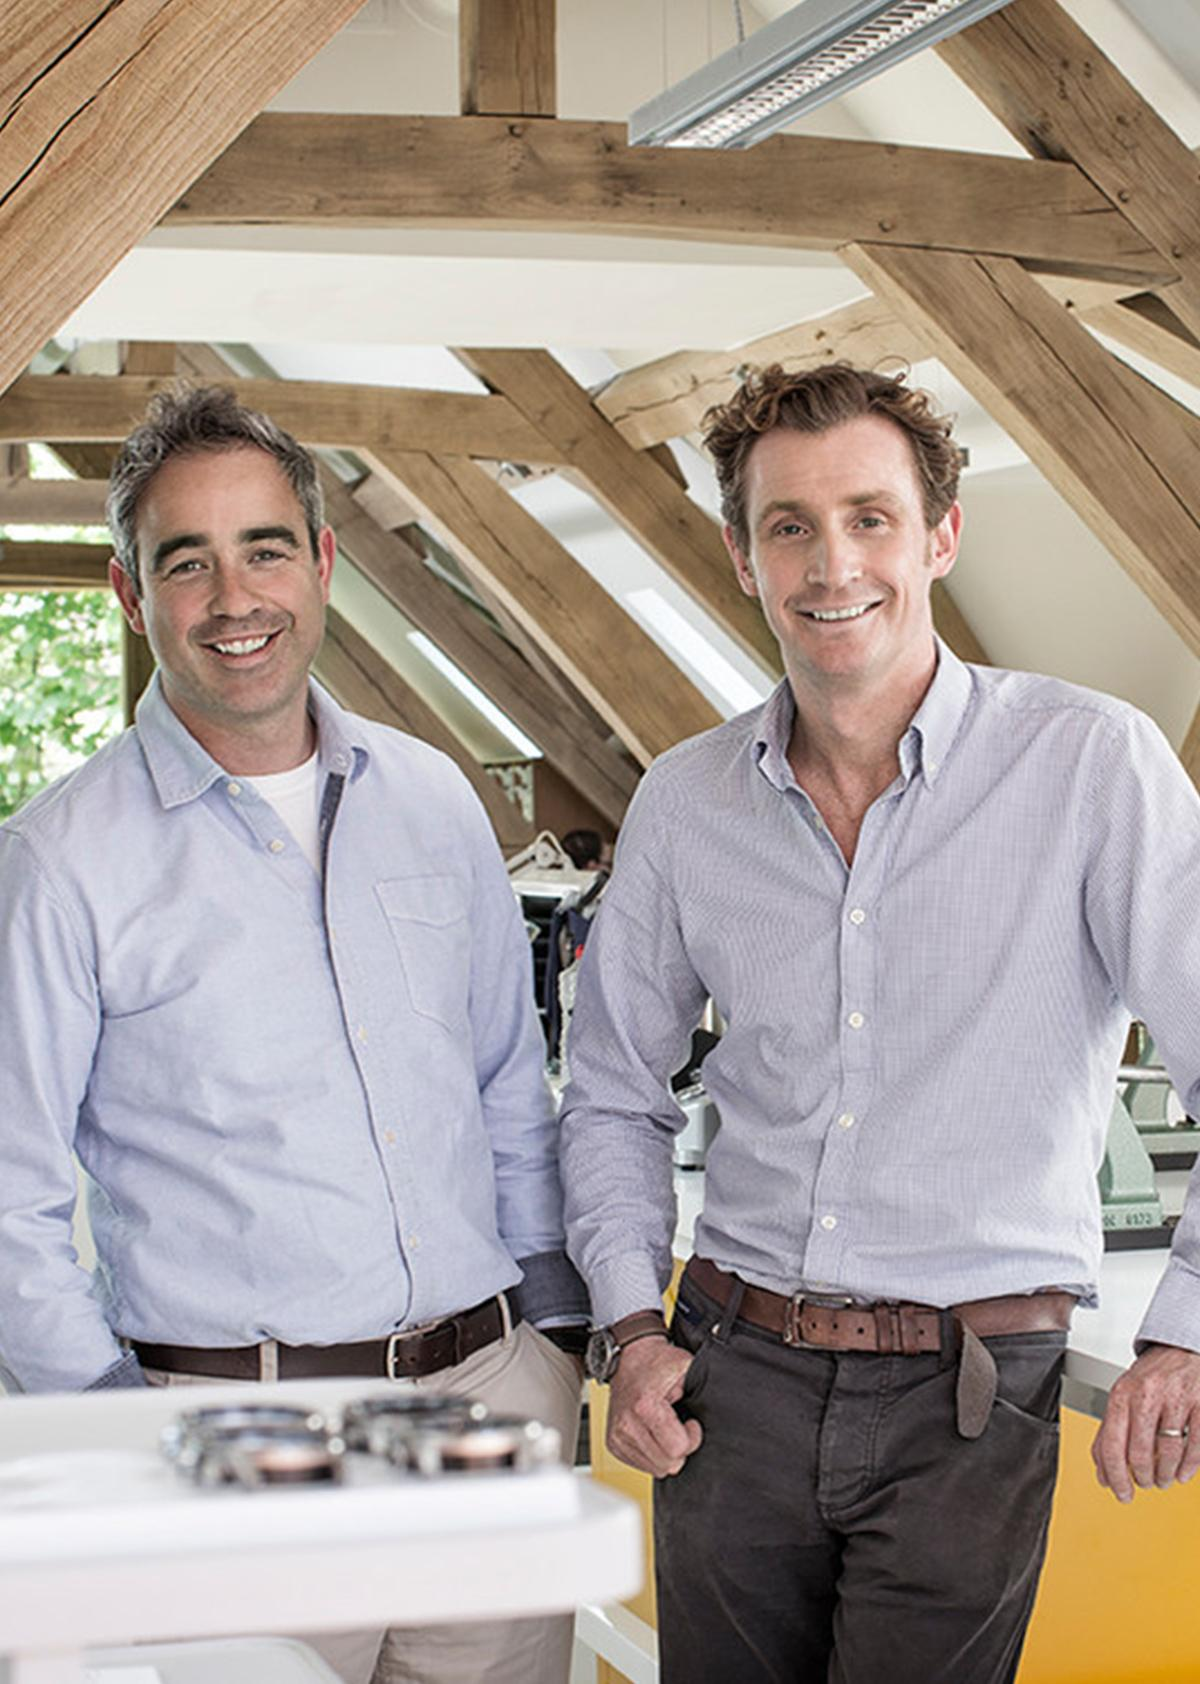 Bremont was founded in Henley-Upon-Thames in 2002 by brothers Nick and Giles English